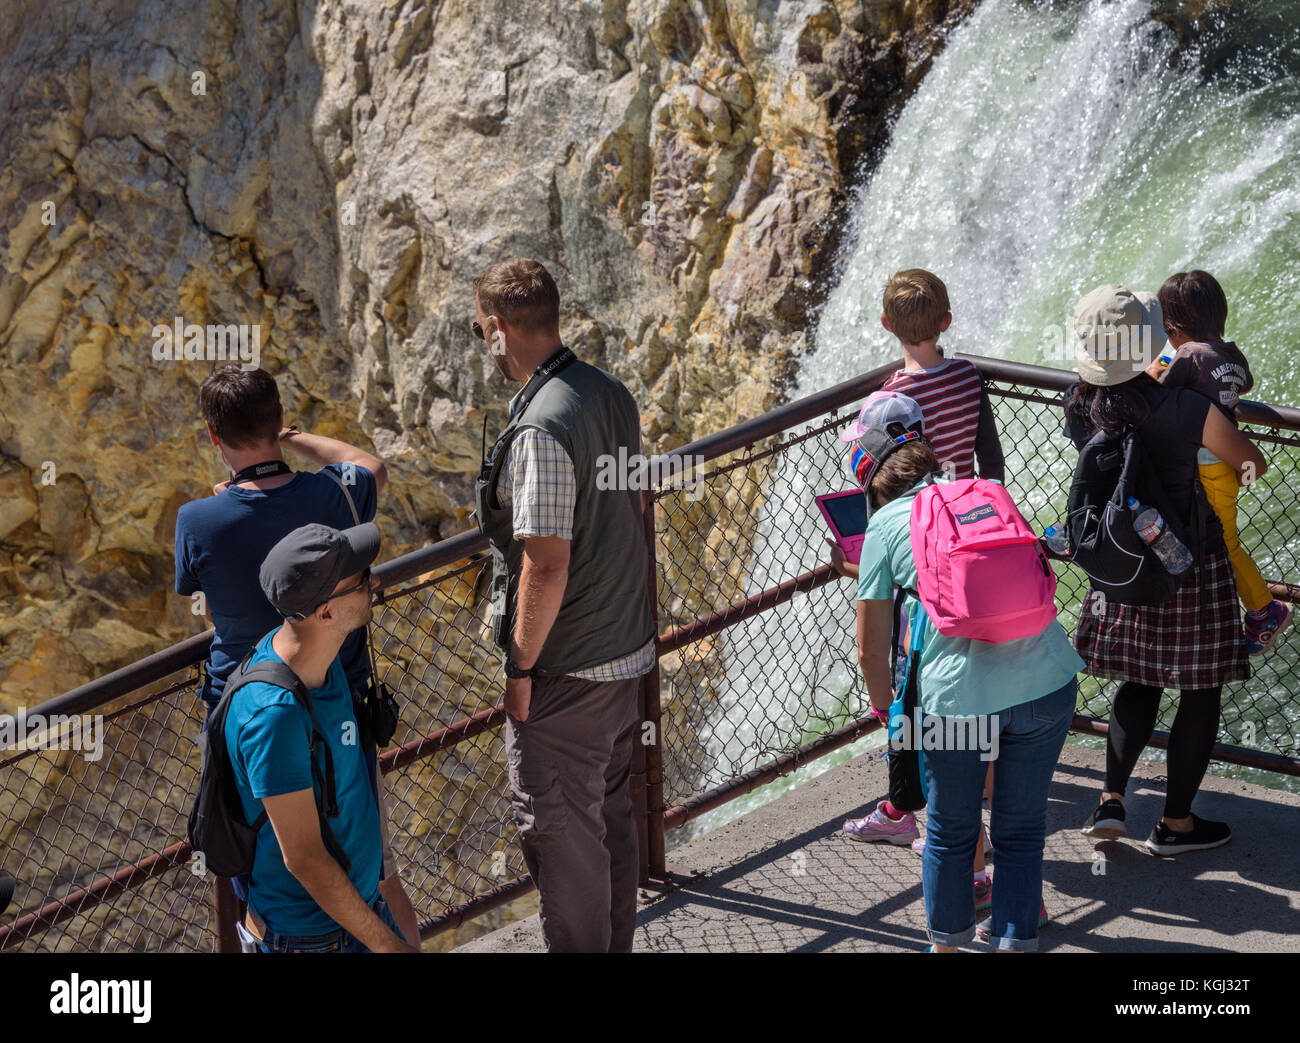 YELLOWSTONE NATIONAL PARK, WYOMING, USA - JULY 17, 2017: Organized group of tourists with a guide watching and taking - Stock Image